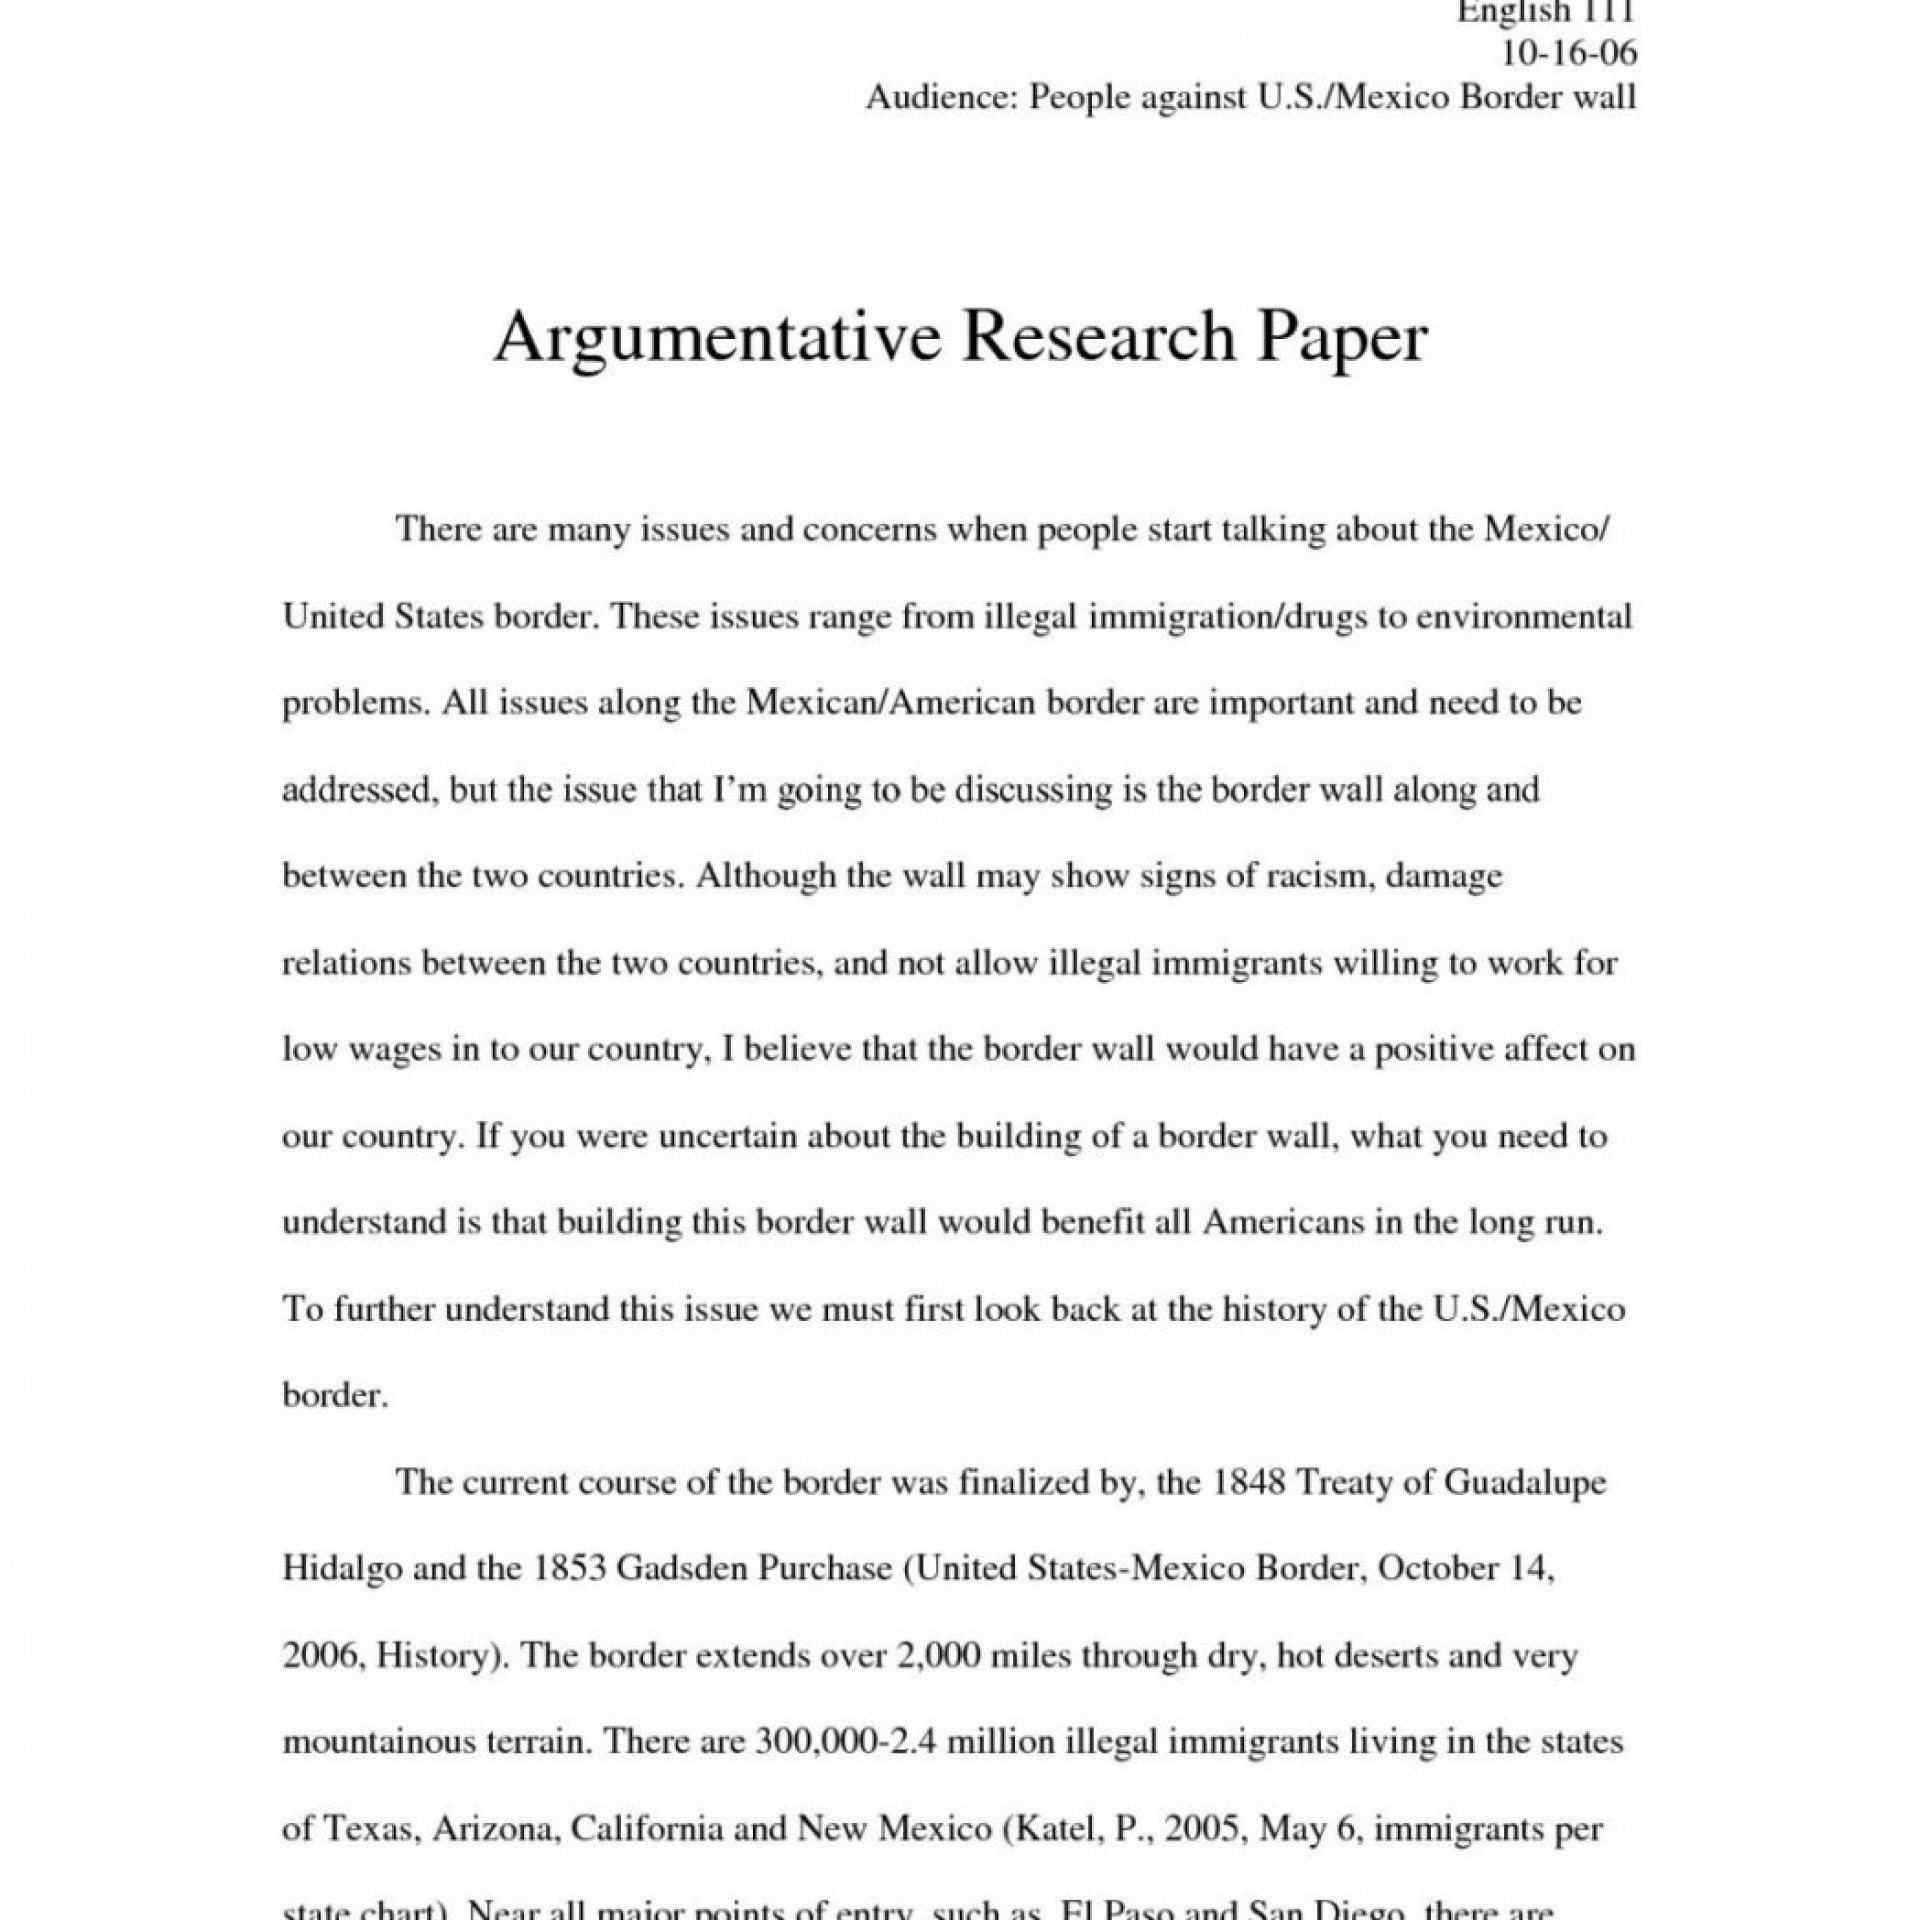 002 High School Argumentative Essay Examples Argument Research Paper Outline Coles Thecolossus Co Throughout Example Format Essays Topics Ideas Rubric For College Thesis On Genetic Engineering Phenomenal Abortion Apa 1920